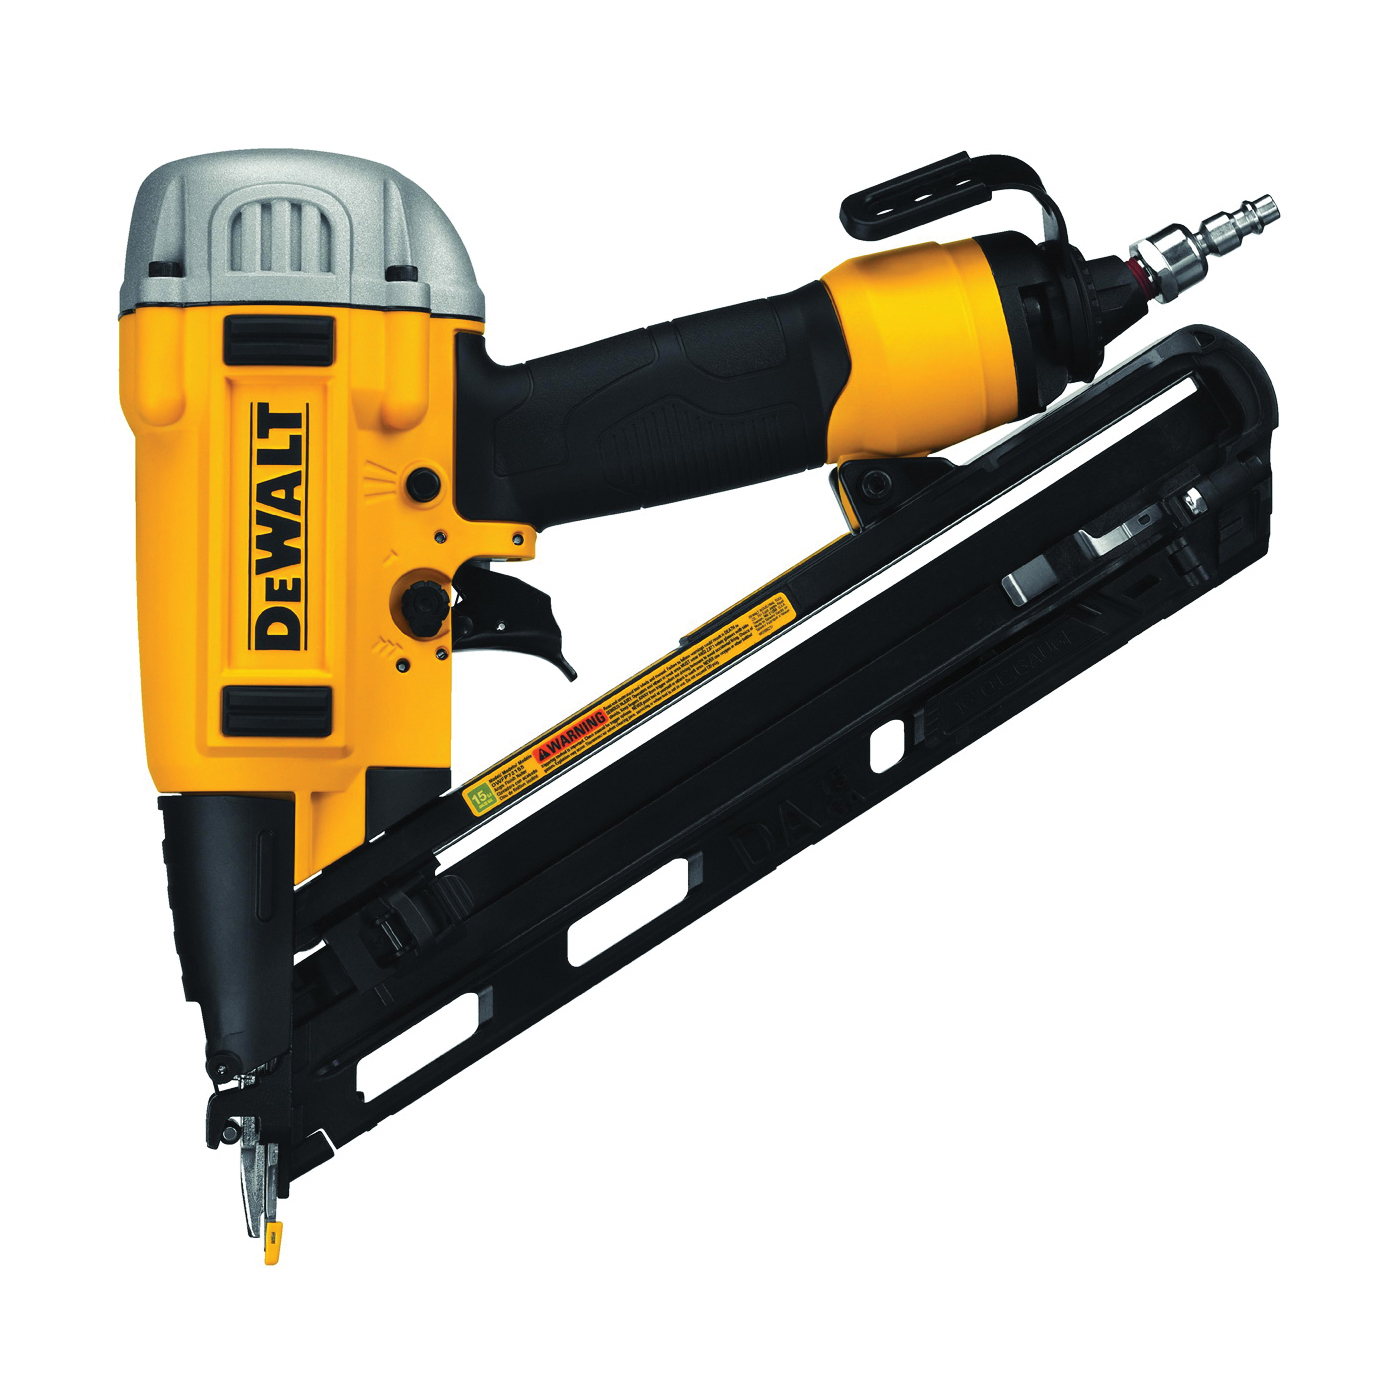 Picture of DeWALT PRECISION POINT DWFP72155 Finish Nailer, 100 Magazine, Glue Collation